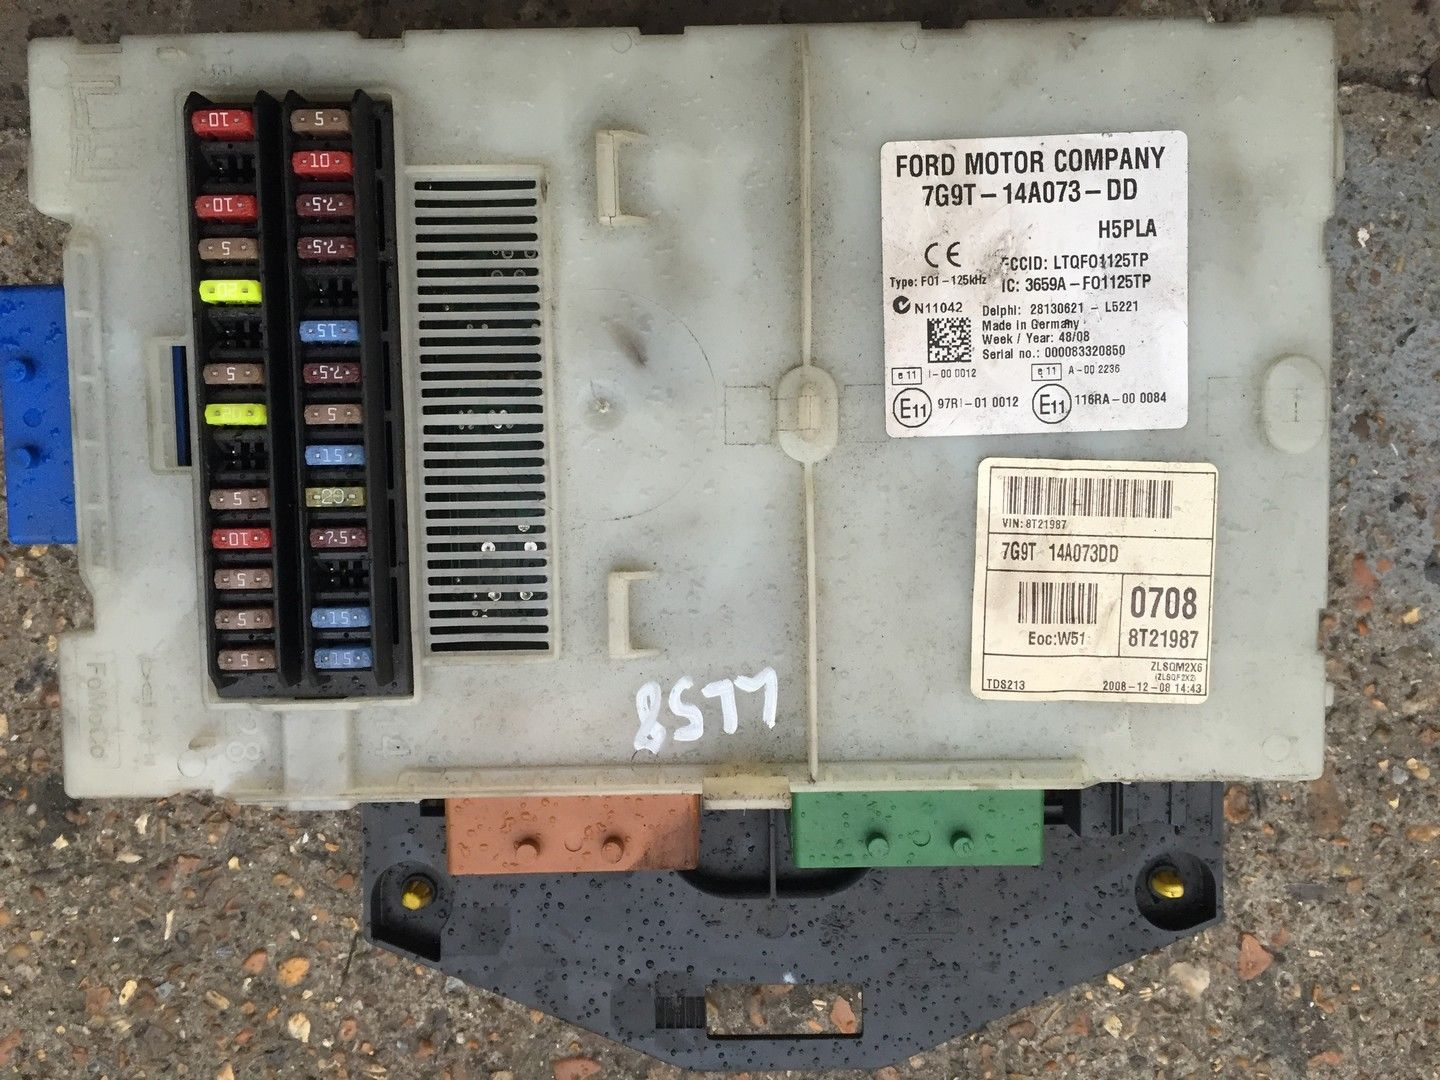 WE_5574] Fuse Box Ford Galaxy Wiring DiagramEachi Eatte Usly Inrebe Mohammedshrine Librar Wiring 101